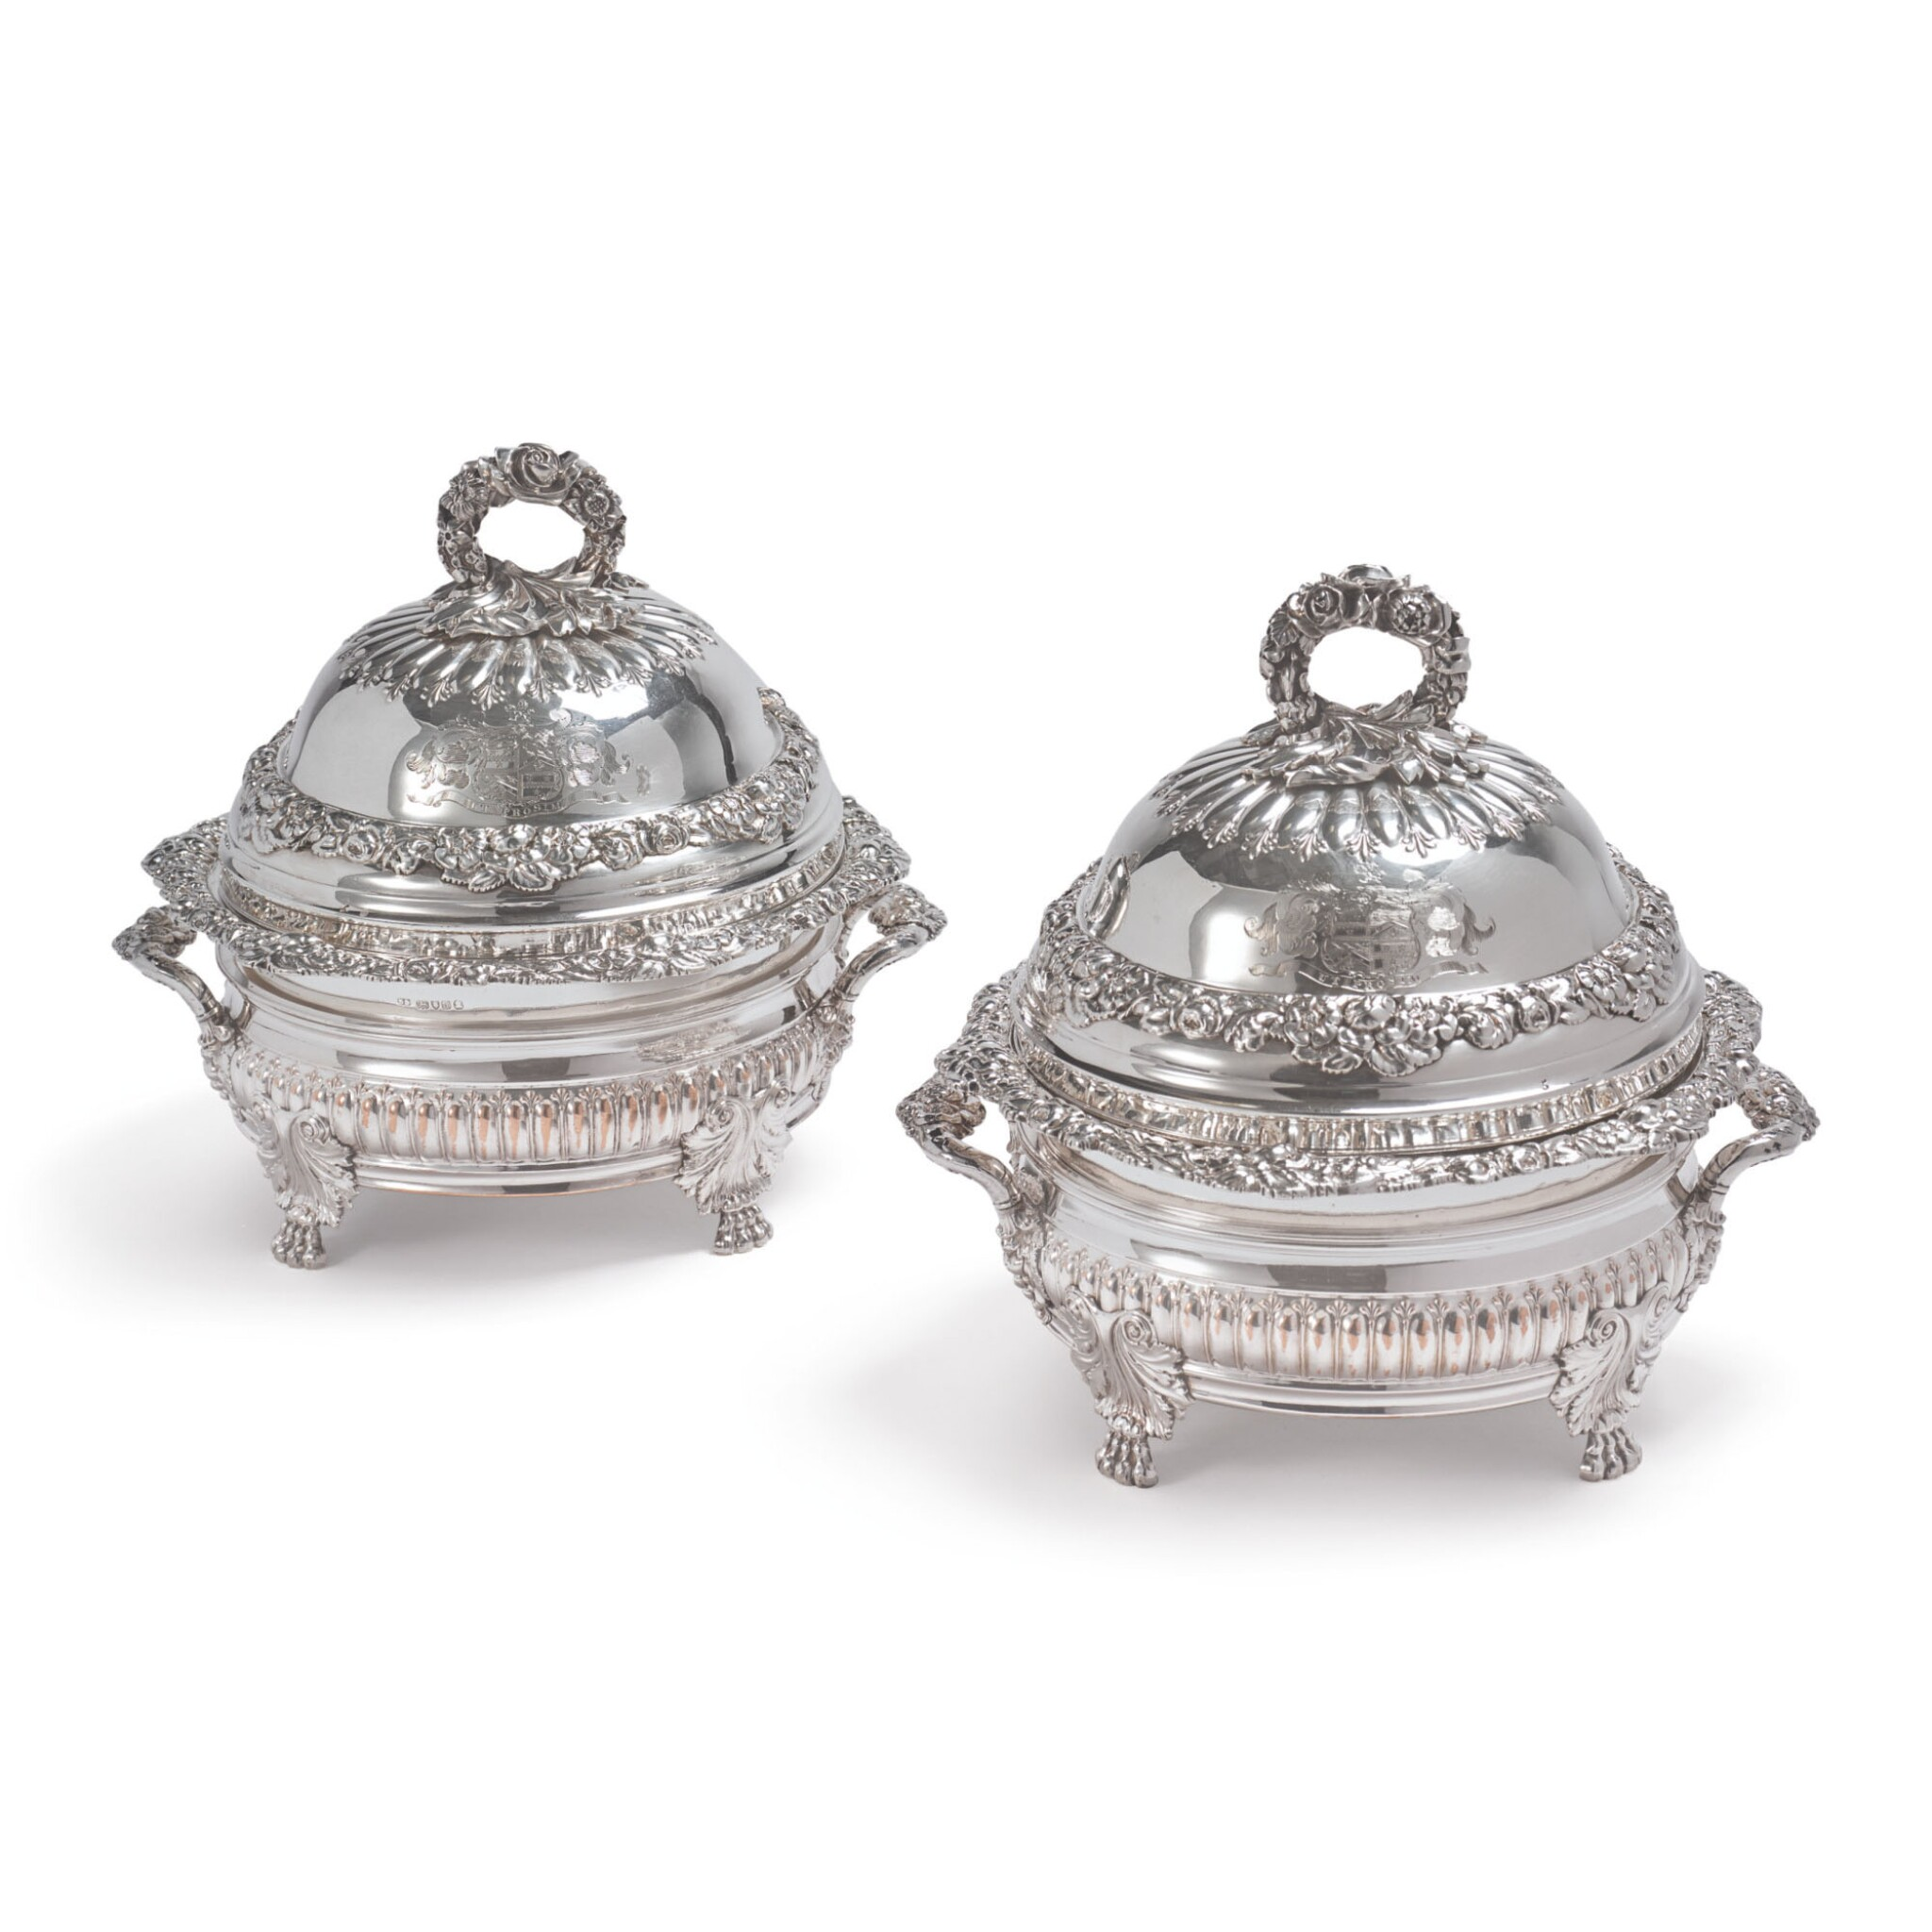 THE FOLEY SERVICE: A PAIR OF REGENCY SILVER ENTRÉE DISHES AND COVERS ON PLATED WARMING STANDS, BENJAMIN SMITH III, LONDON, 1819